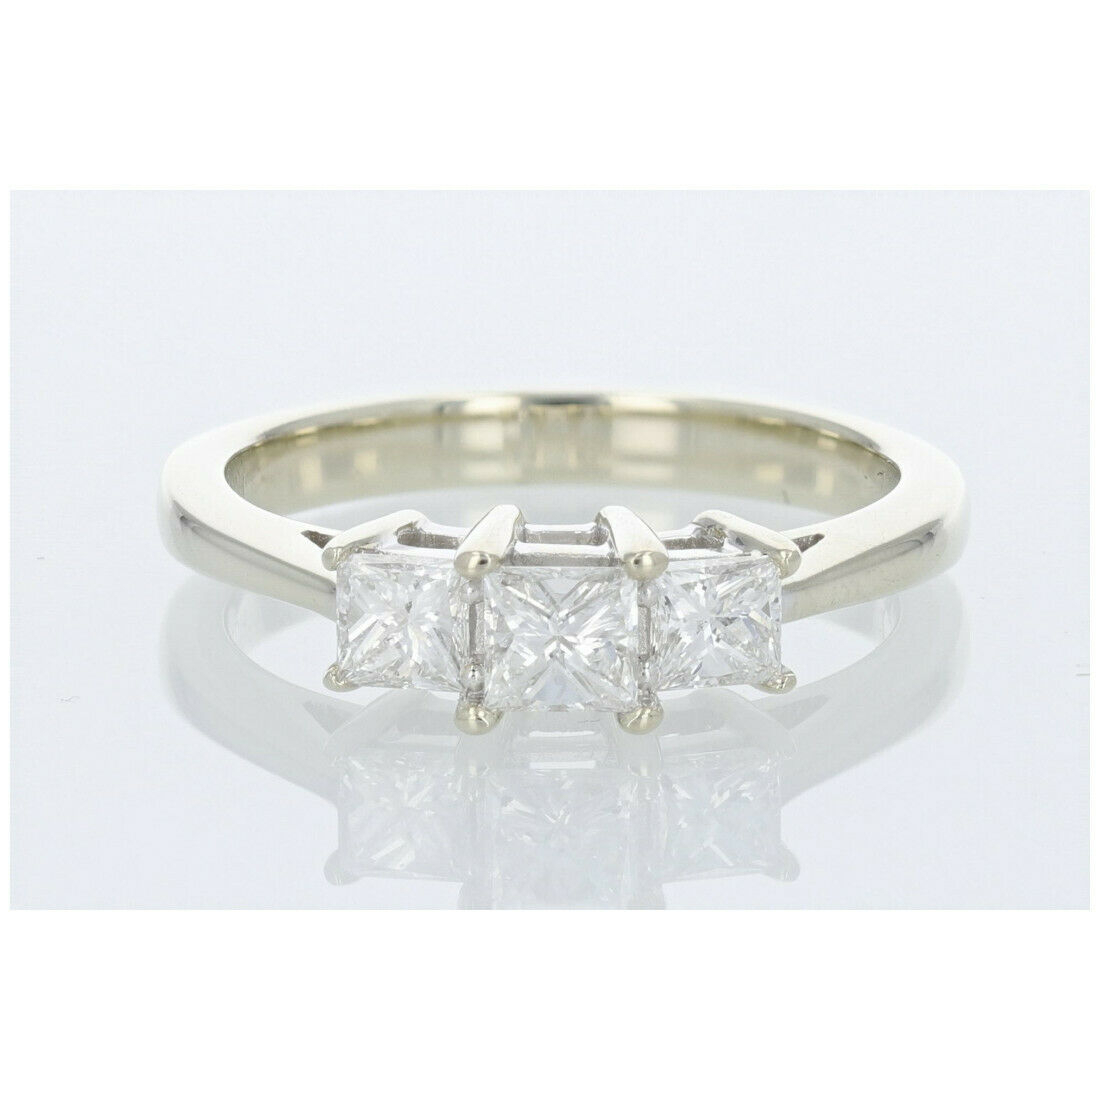 In Ring Engagement Stone Three Diamond Cut Princess 14k Gold Throughout 2020 Diamond Three Row Collar Anniversary Bands In White Gold (View 16 of 25)